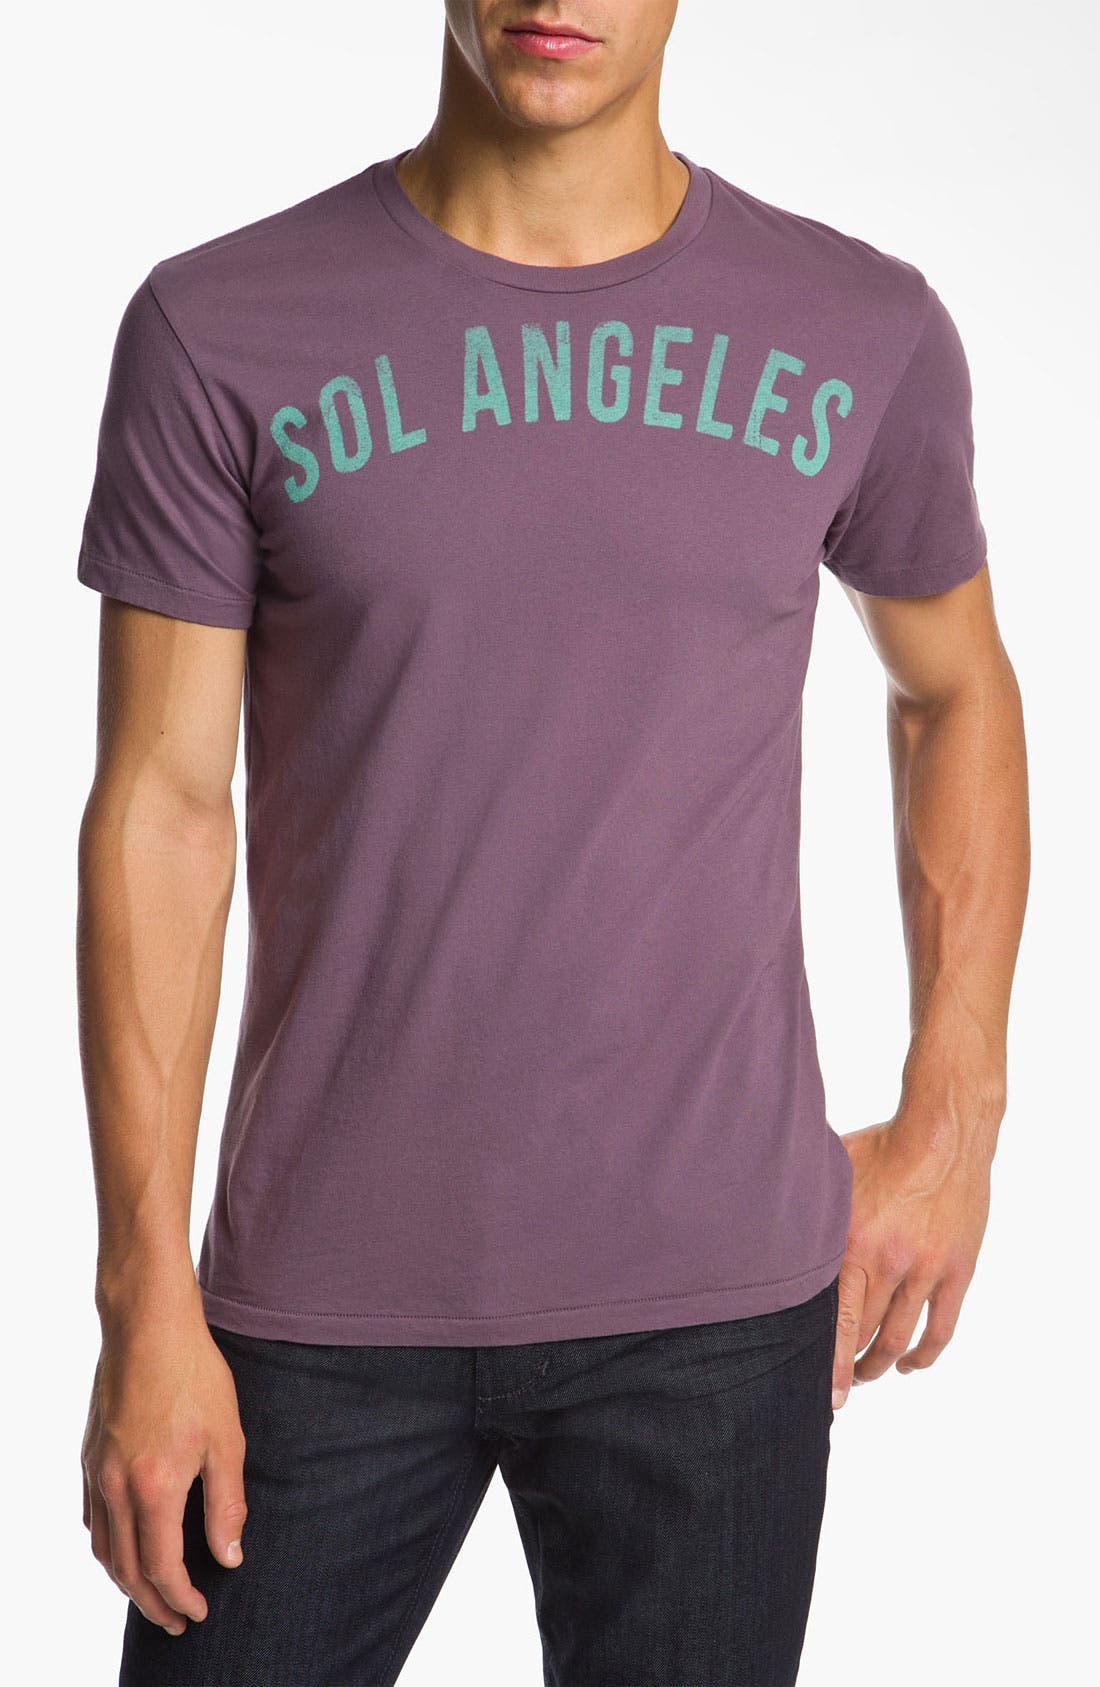 Alternate Image 1 Selected - Sol Angeles 'Logo' Graphic T-Shirt